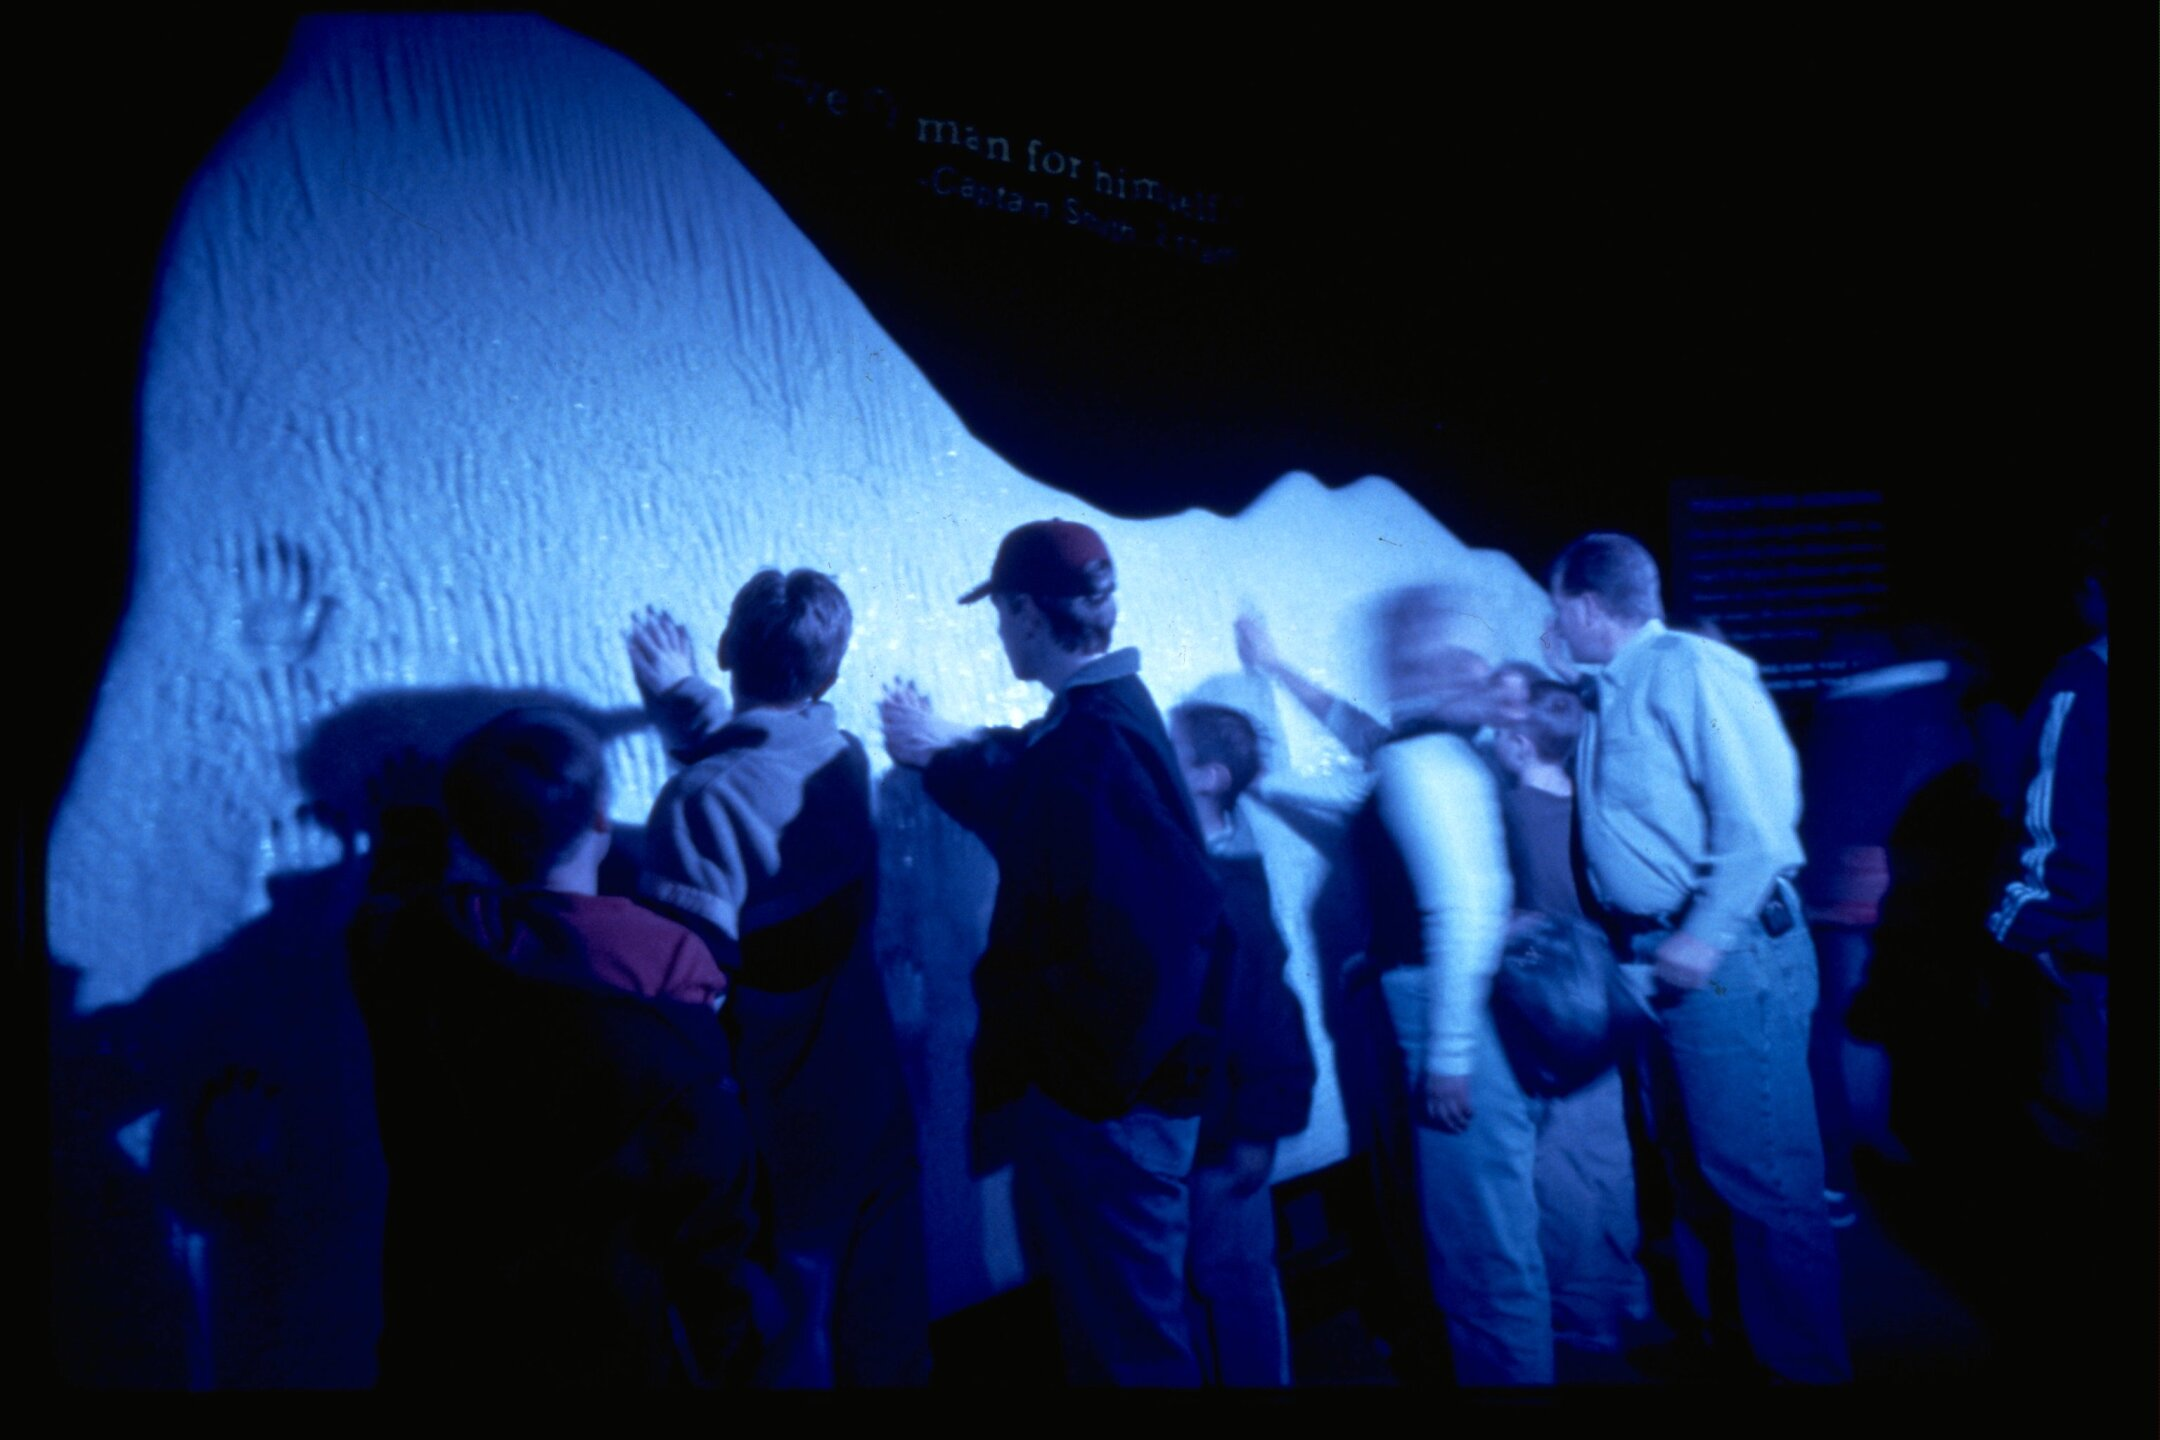 Ice Wall_Titanic the Artifact Exhibition at Luxor Hotel & Casino.jpg